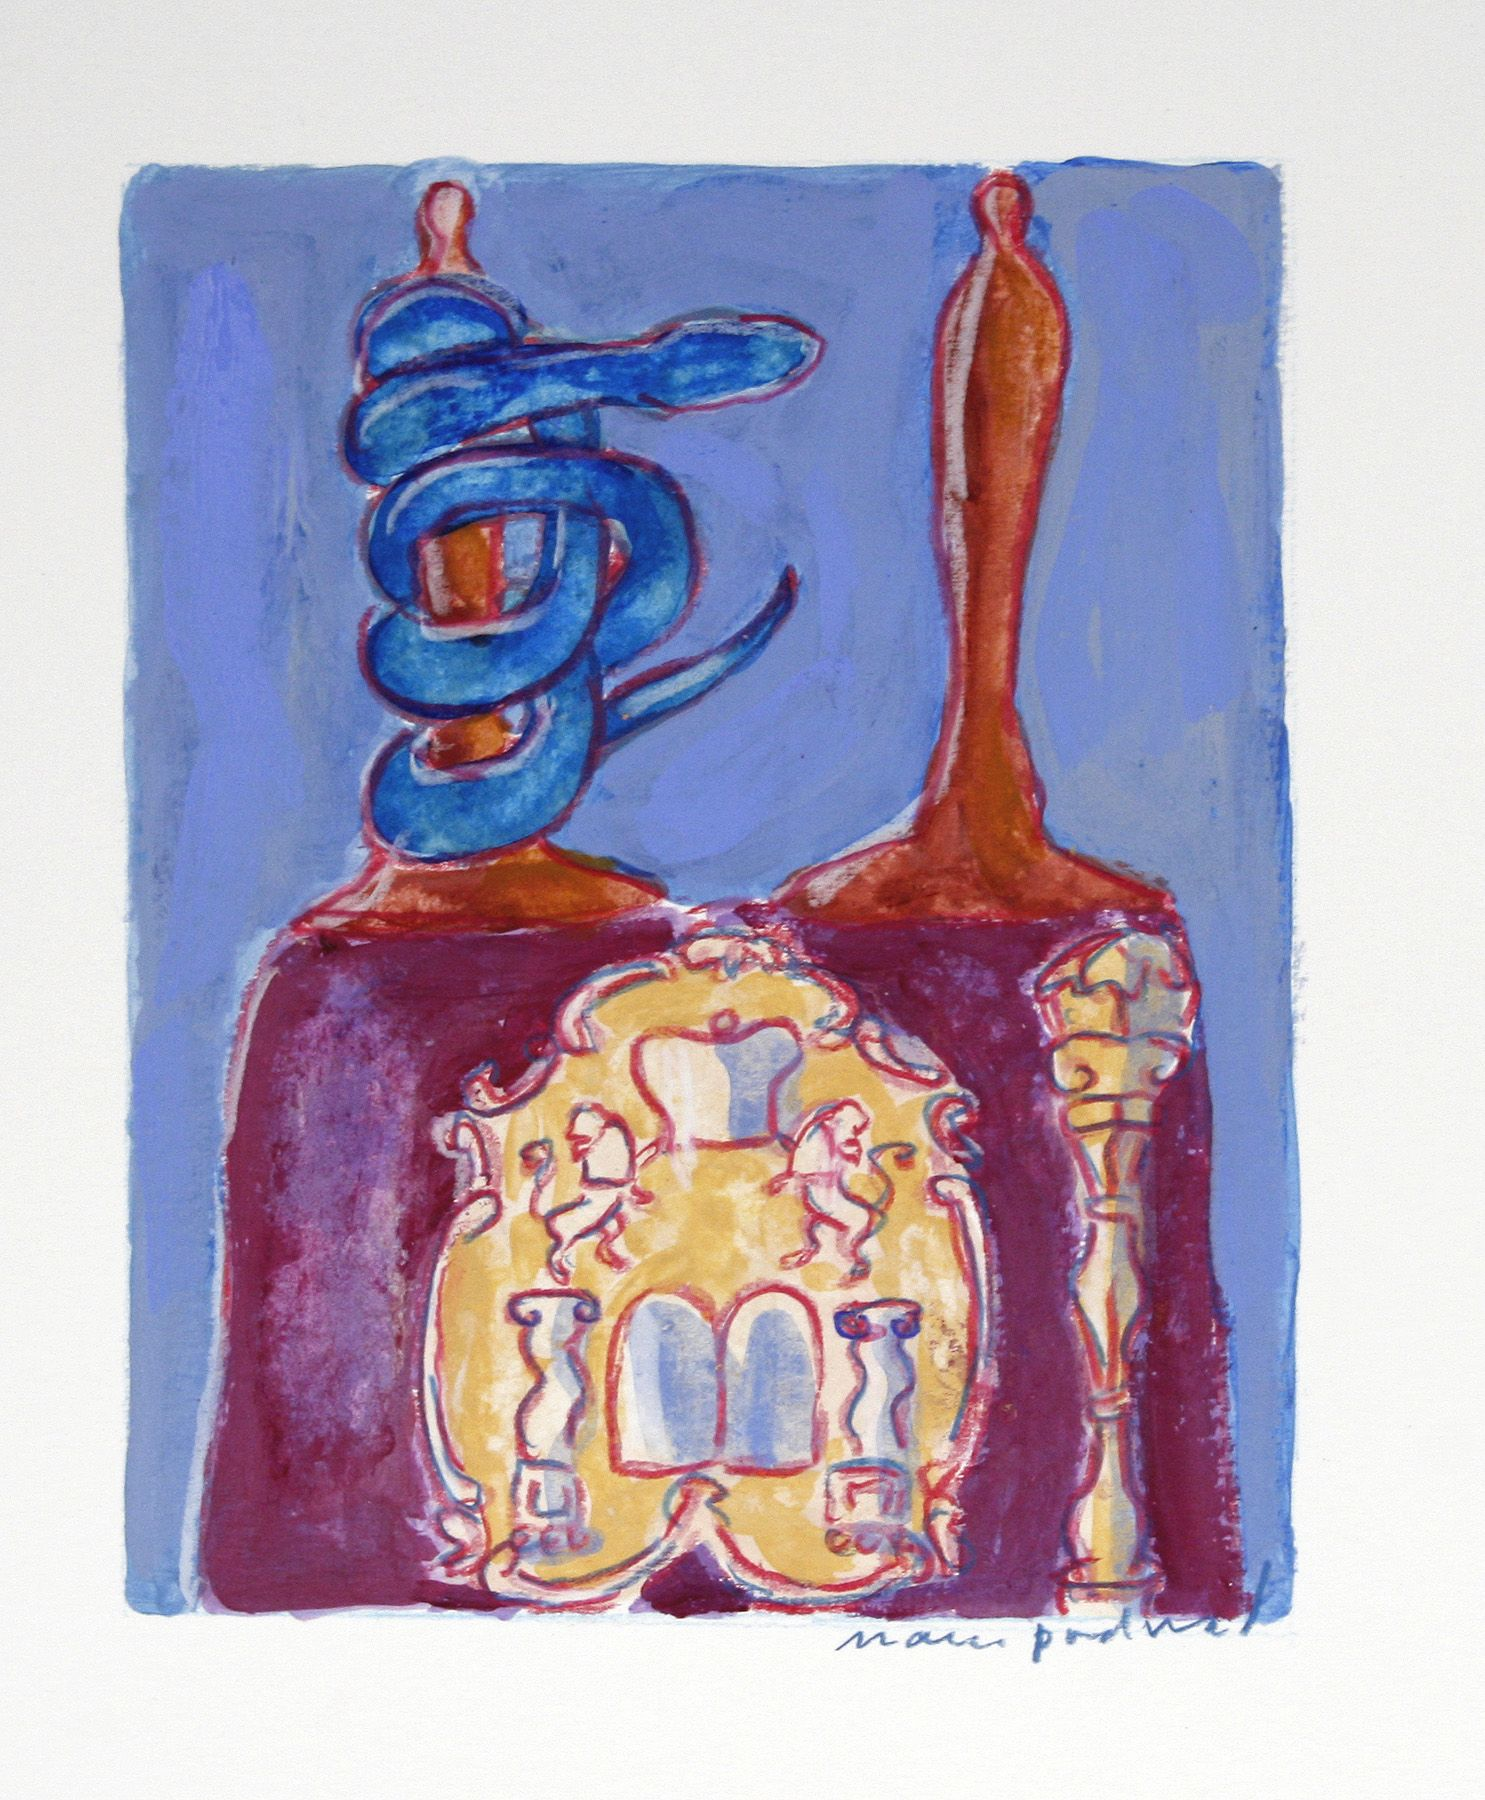 Mark Podwal, Good and Evil, 2008, acrylic, gouache & colored pencil on paper, 7 1/2 x 5 3/4 inches